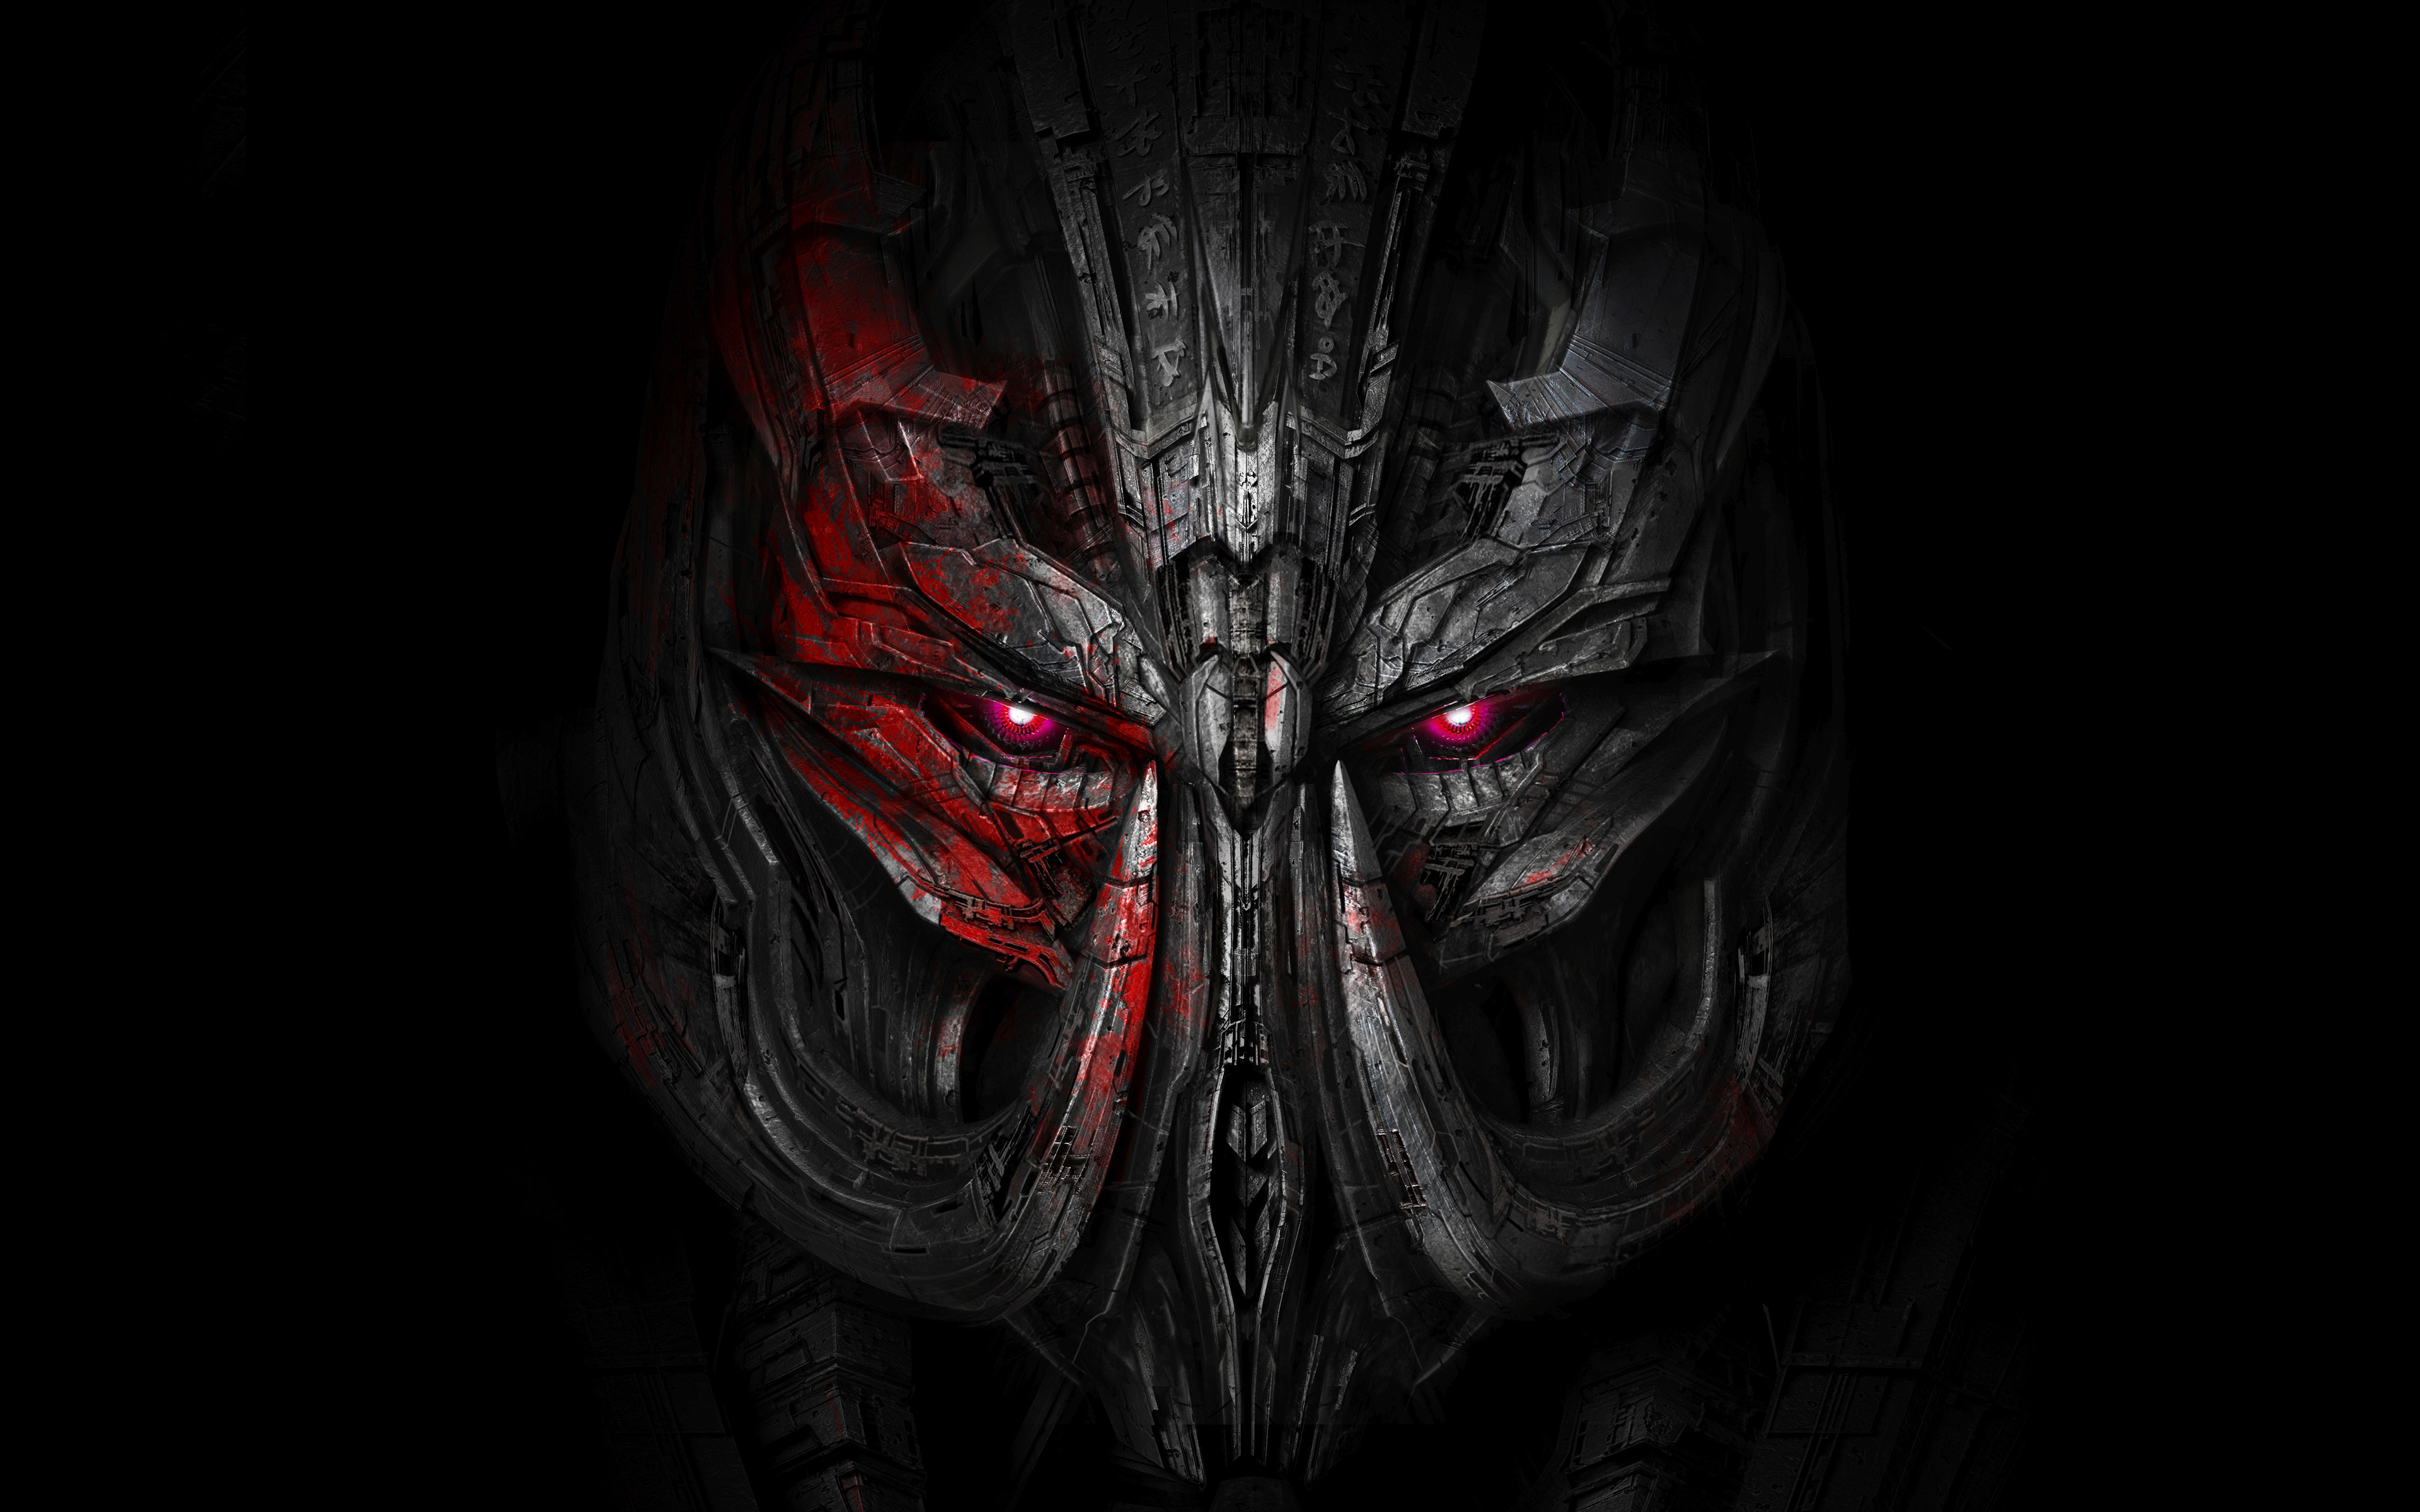 2048x1152 Megatron 2048x1152 Resolution Hd 4k Wallpapers Images